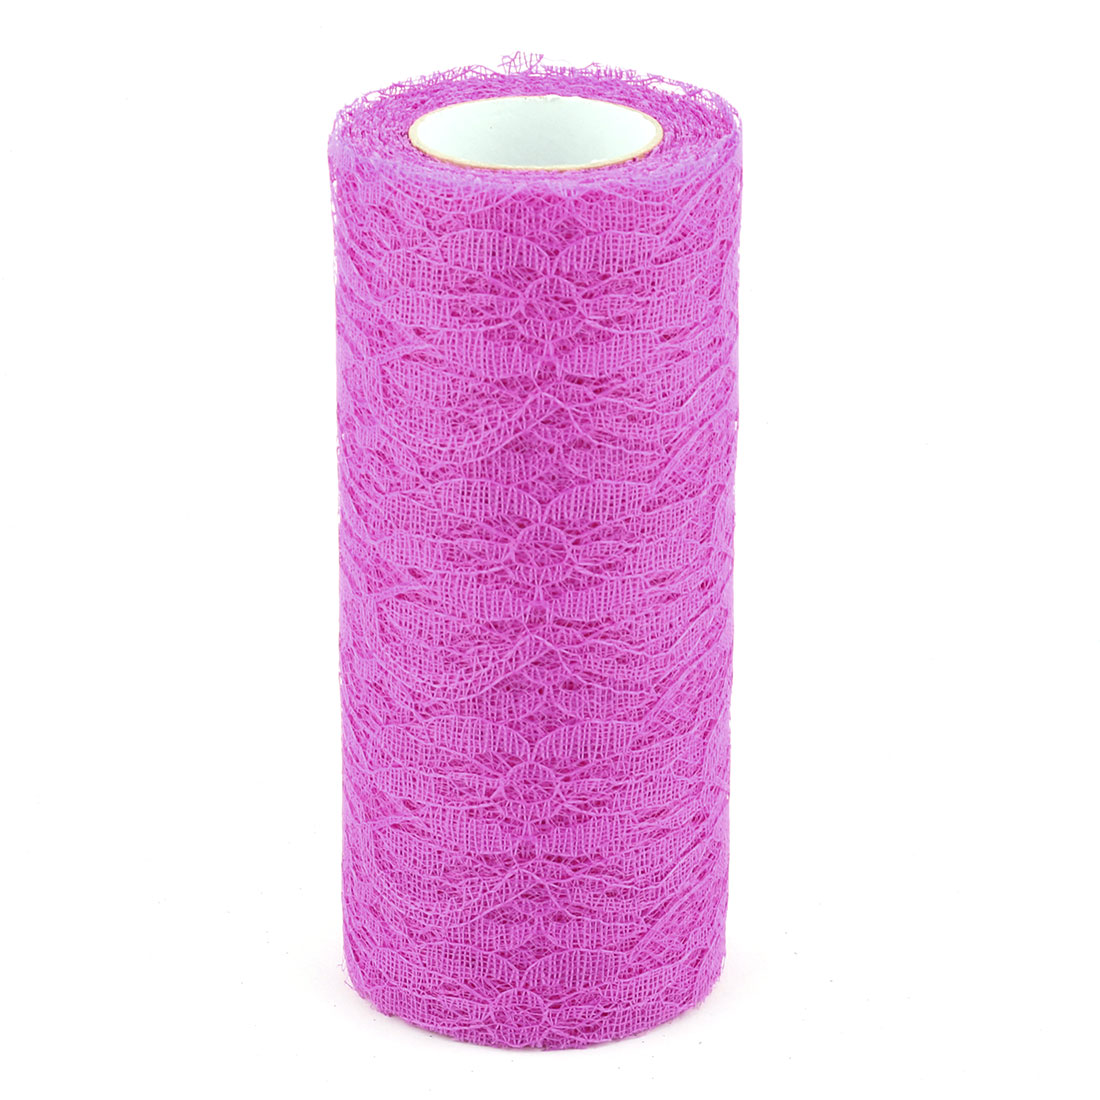 Unique Bargains Family Tutu Gift Decor DIY Craft Tulle Spool Roll Purple 6 Inch x 10 Yards